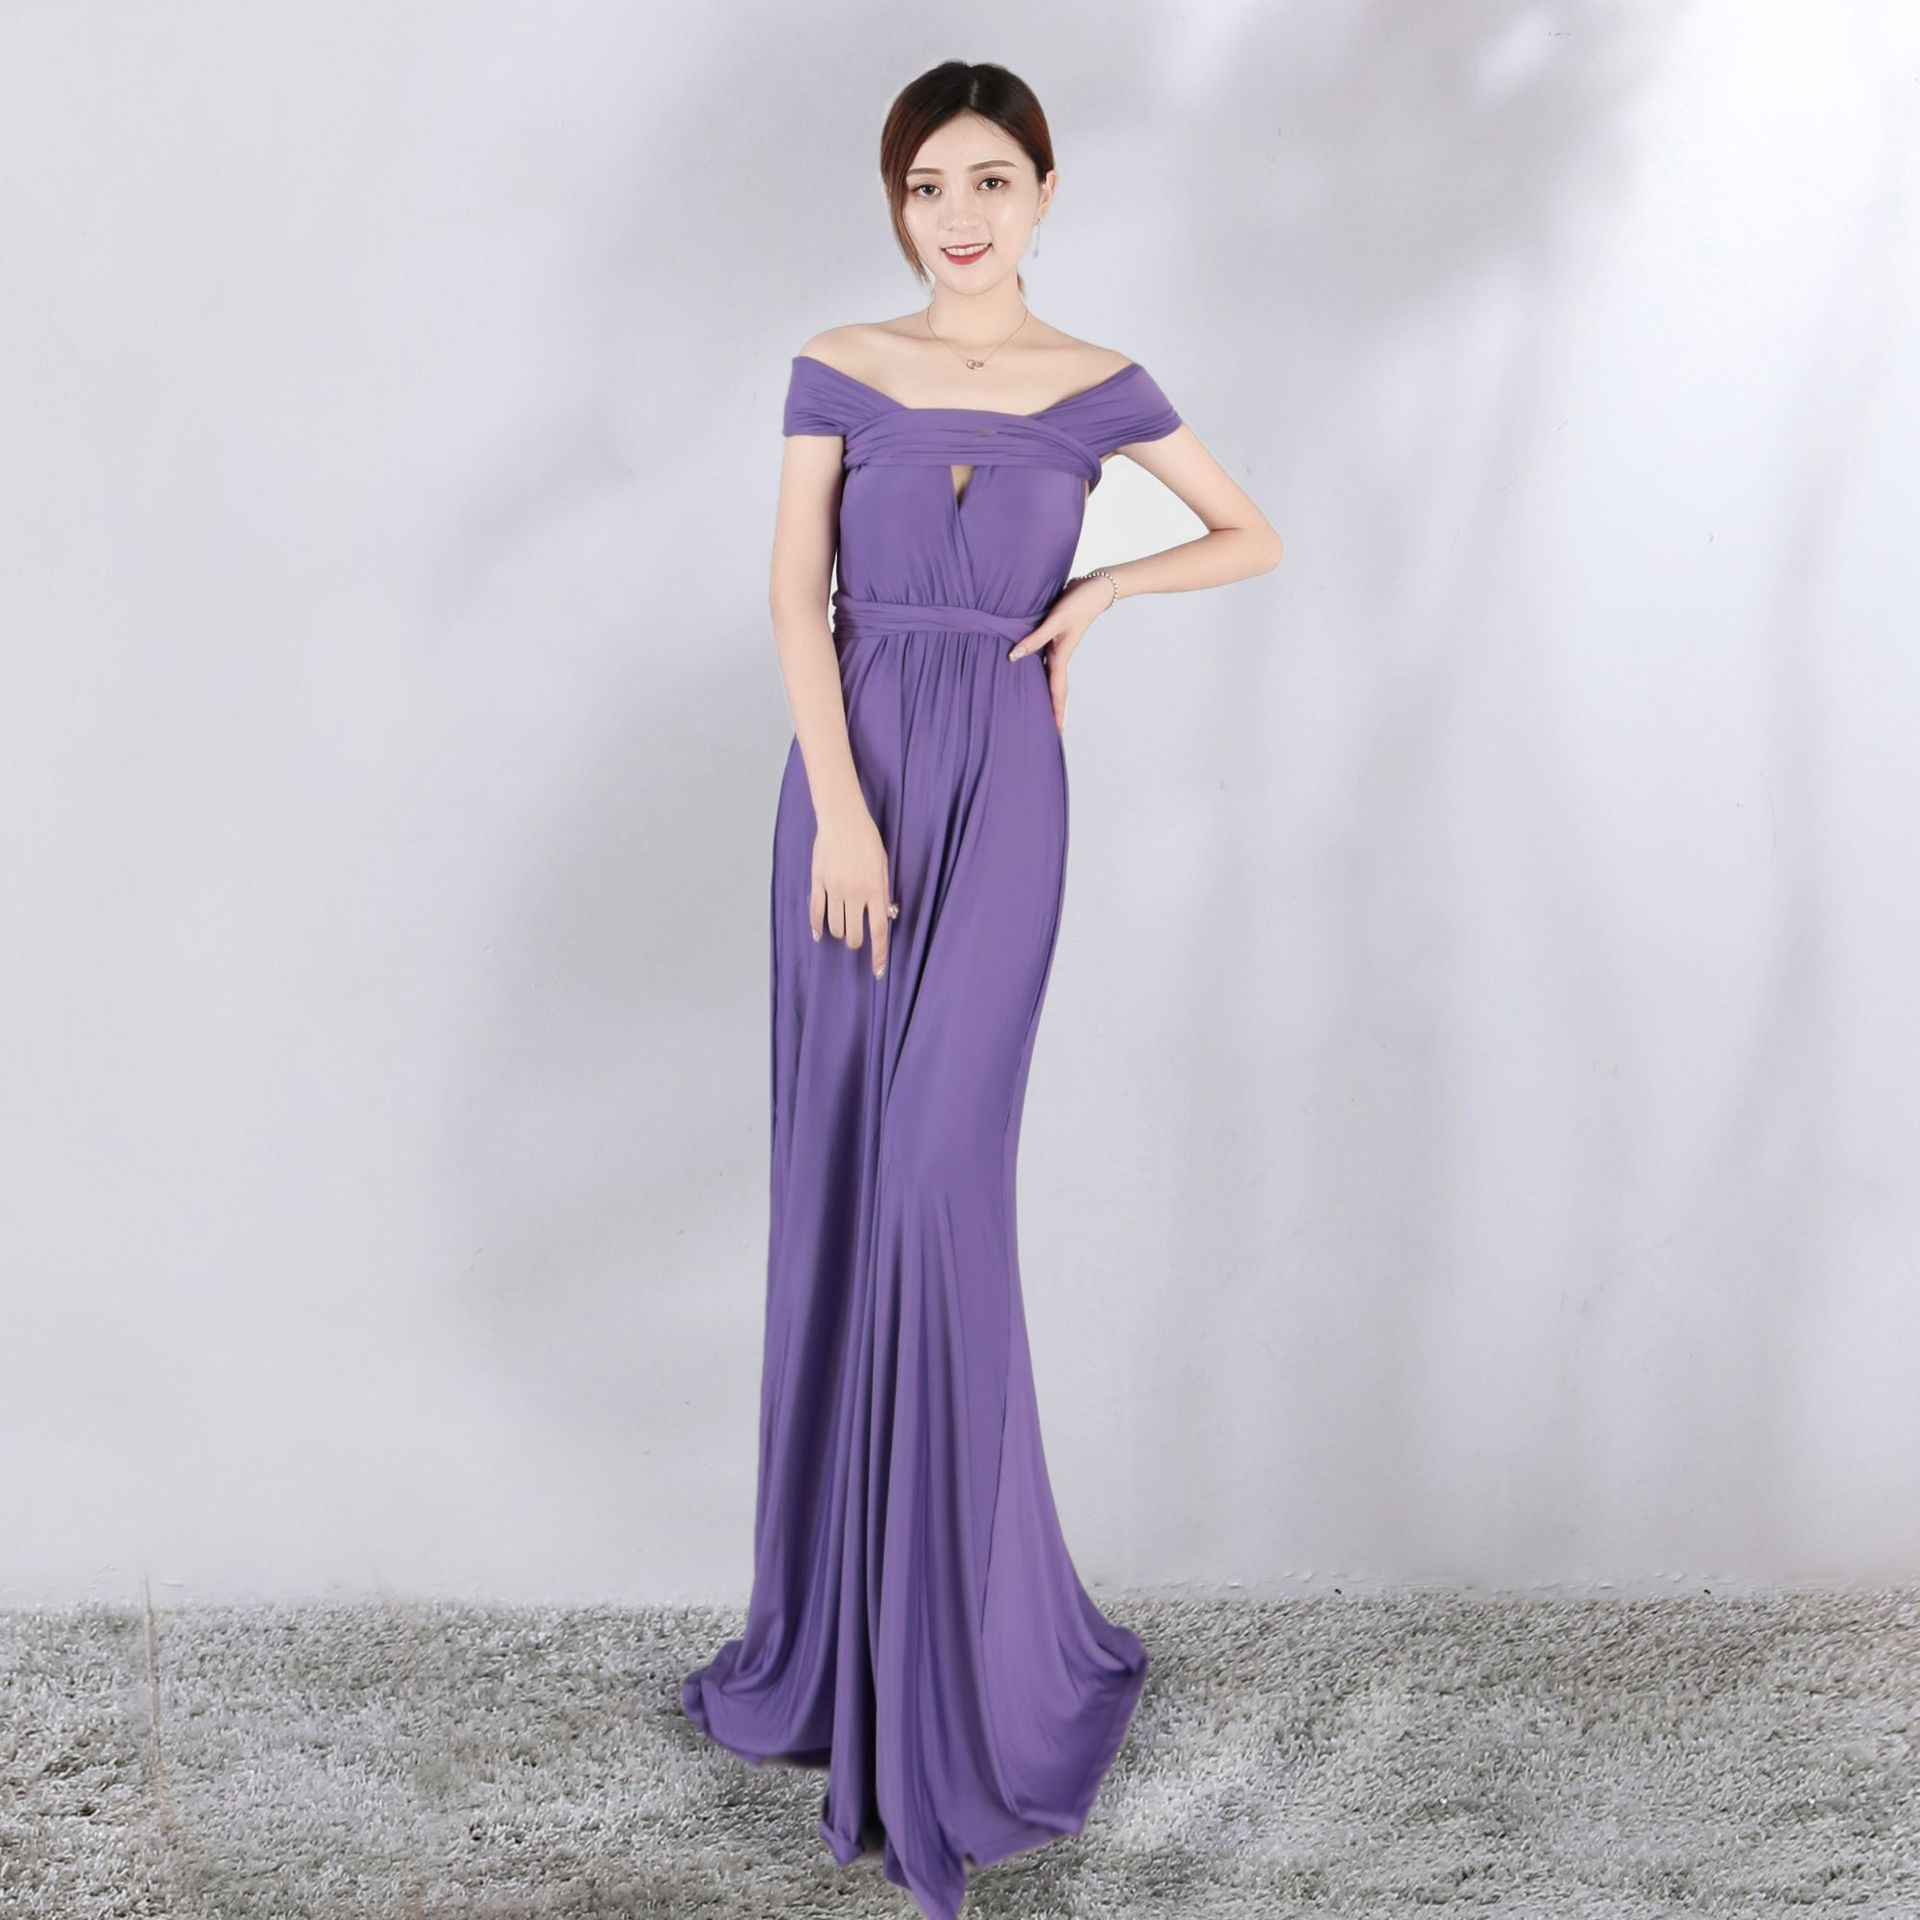 Popodion Bridesmaid Dresses Worn More Sexy More Rope Bandage 14 Color Long  Dress Wedding Guest Dress 524163a7bf1e